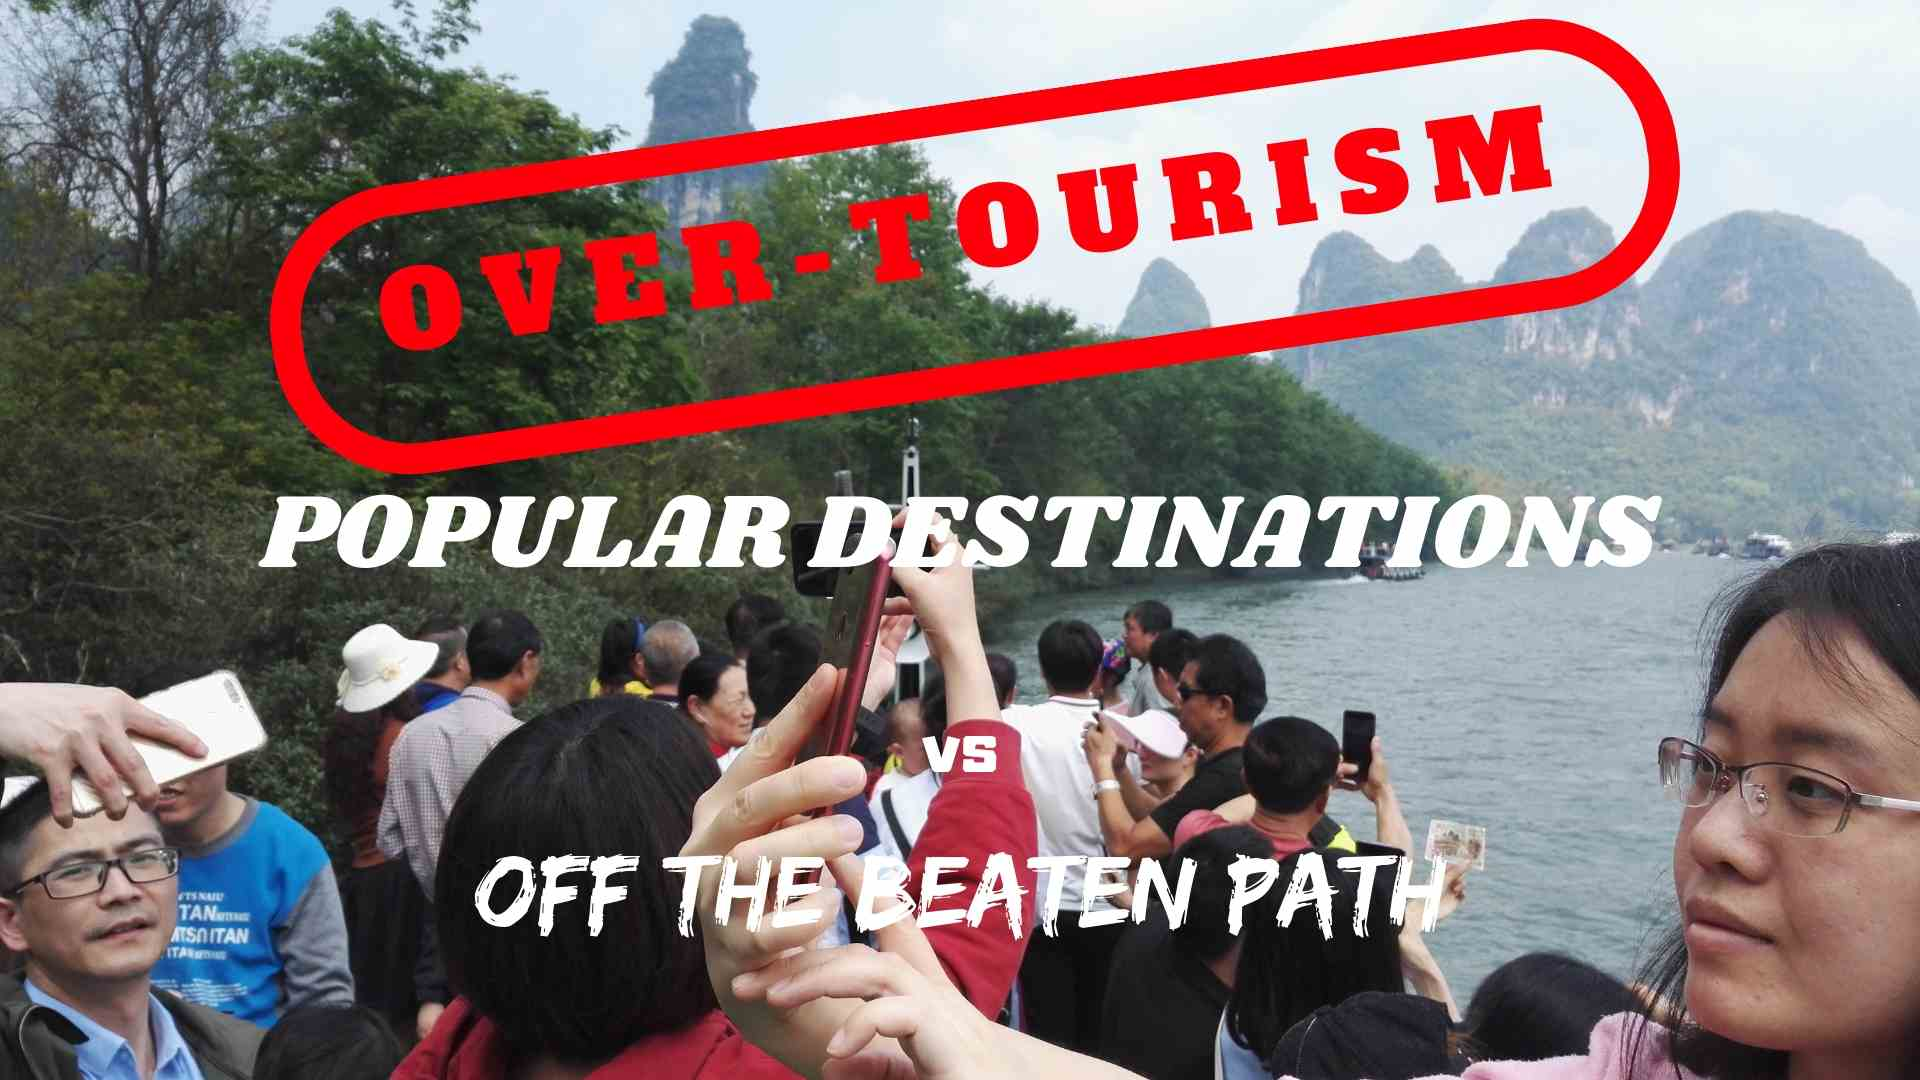 POPULAR DESTINATIONS VS OFF THE BEATEN PATH, OVER-TOURISM AND ITS ALTERNATIVES